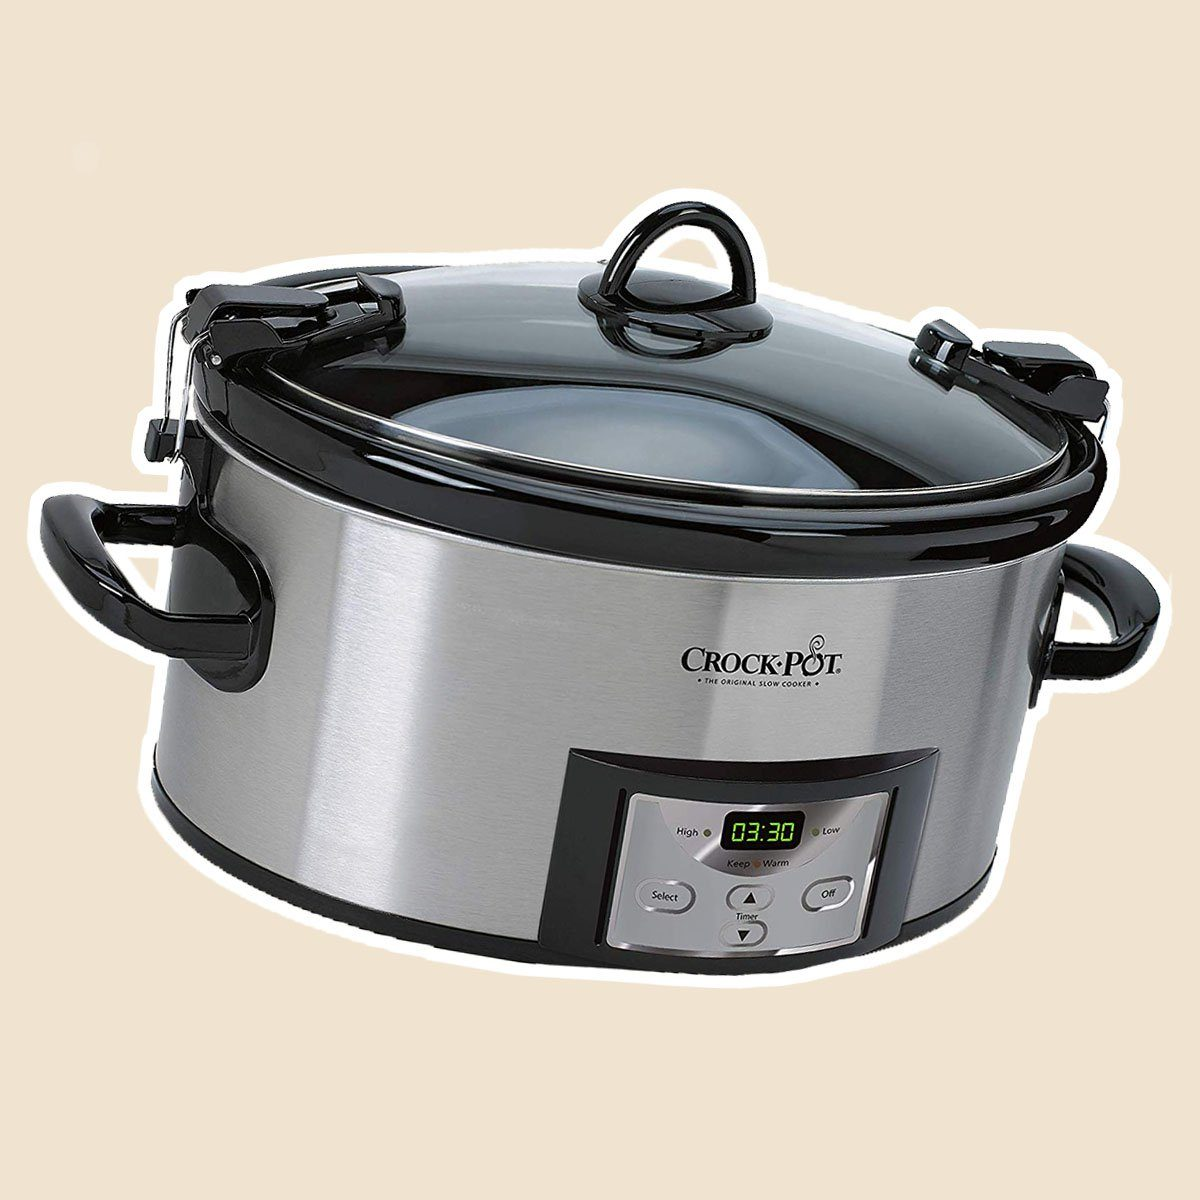 Crock Pot 6 Quart